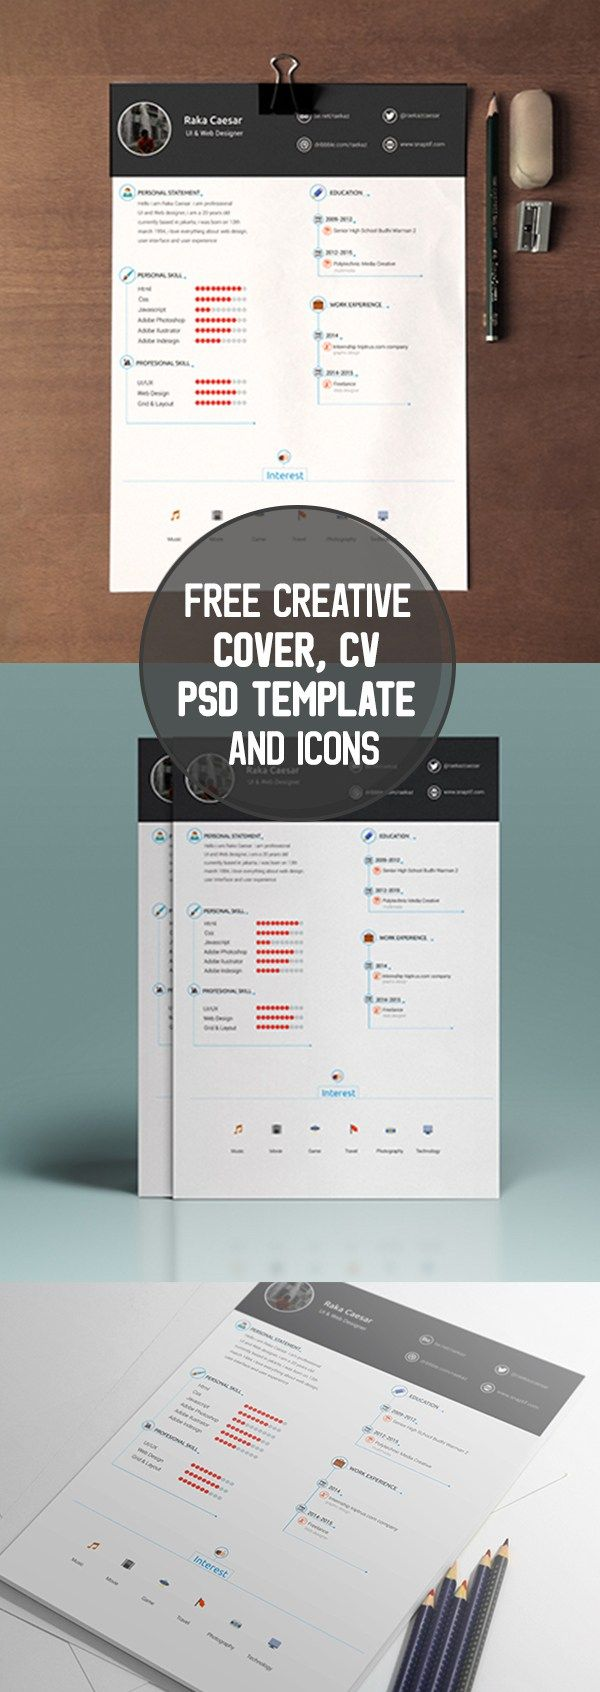 Free Creative Cover, CV PSD Template and Icons | Artists\' Branding ...